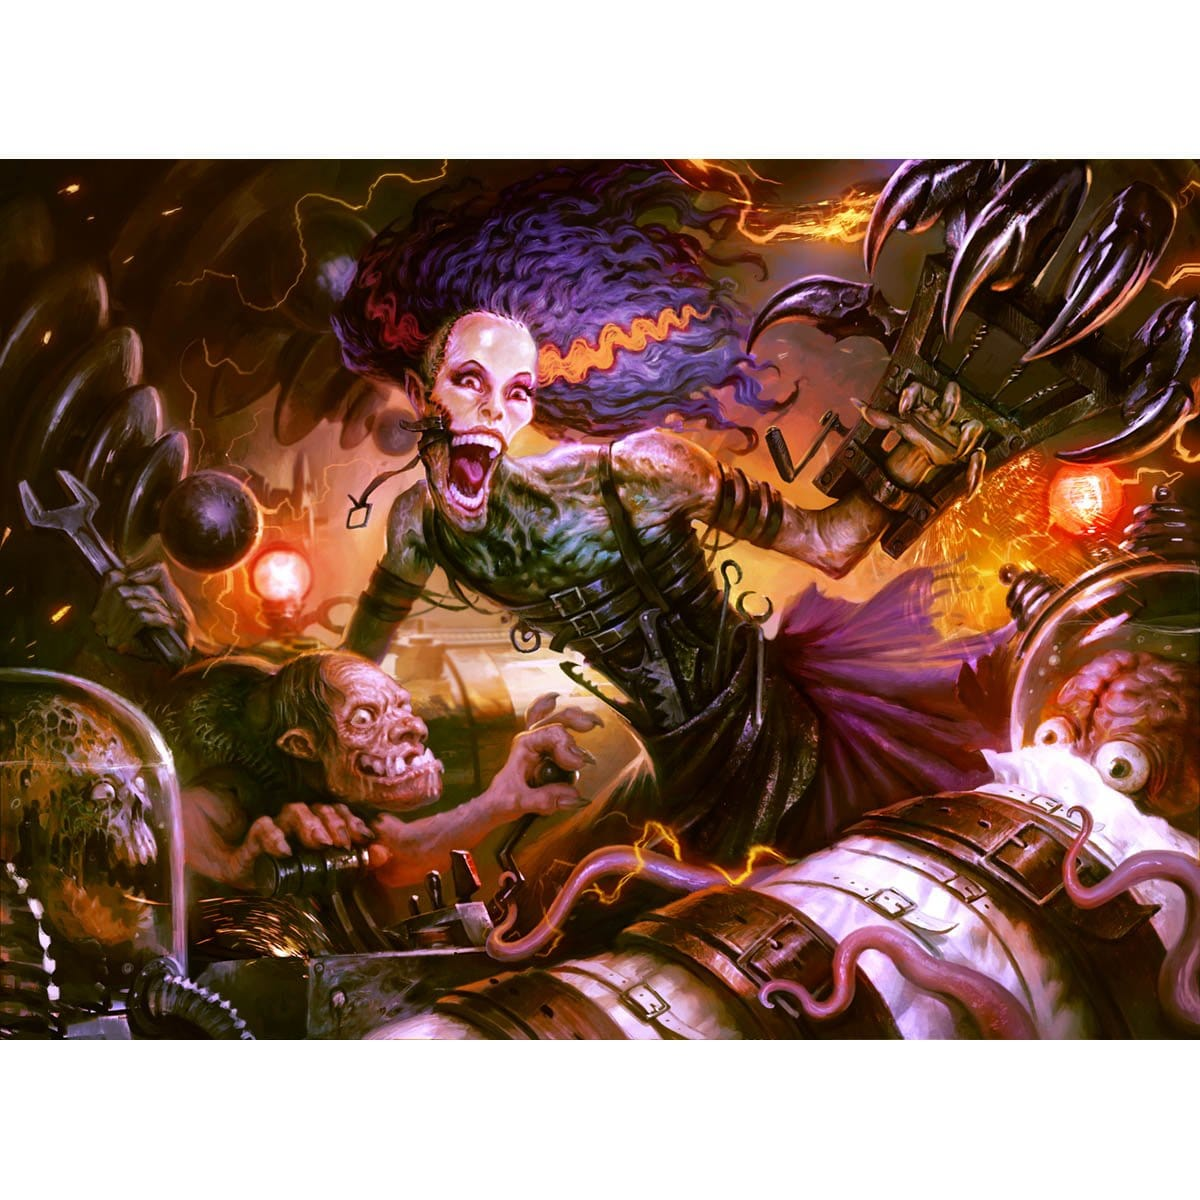 Grusilda, Monster Masher Print - Print - Original Magic Art - Accessories for Magic the Gathering and other card games